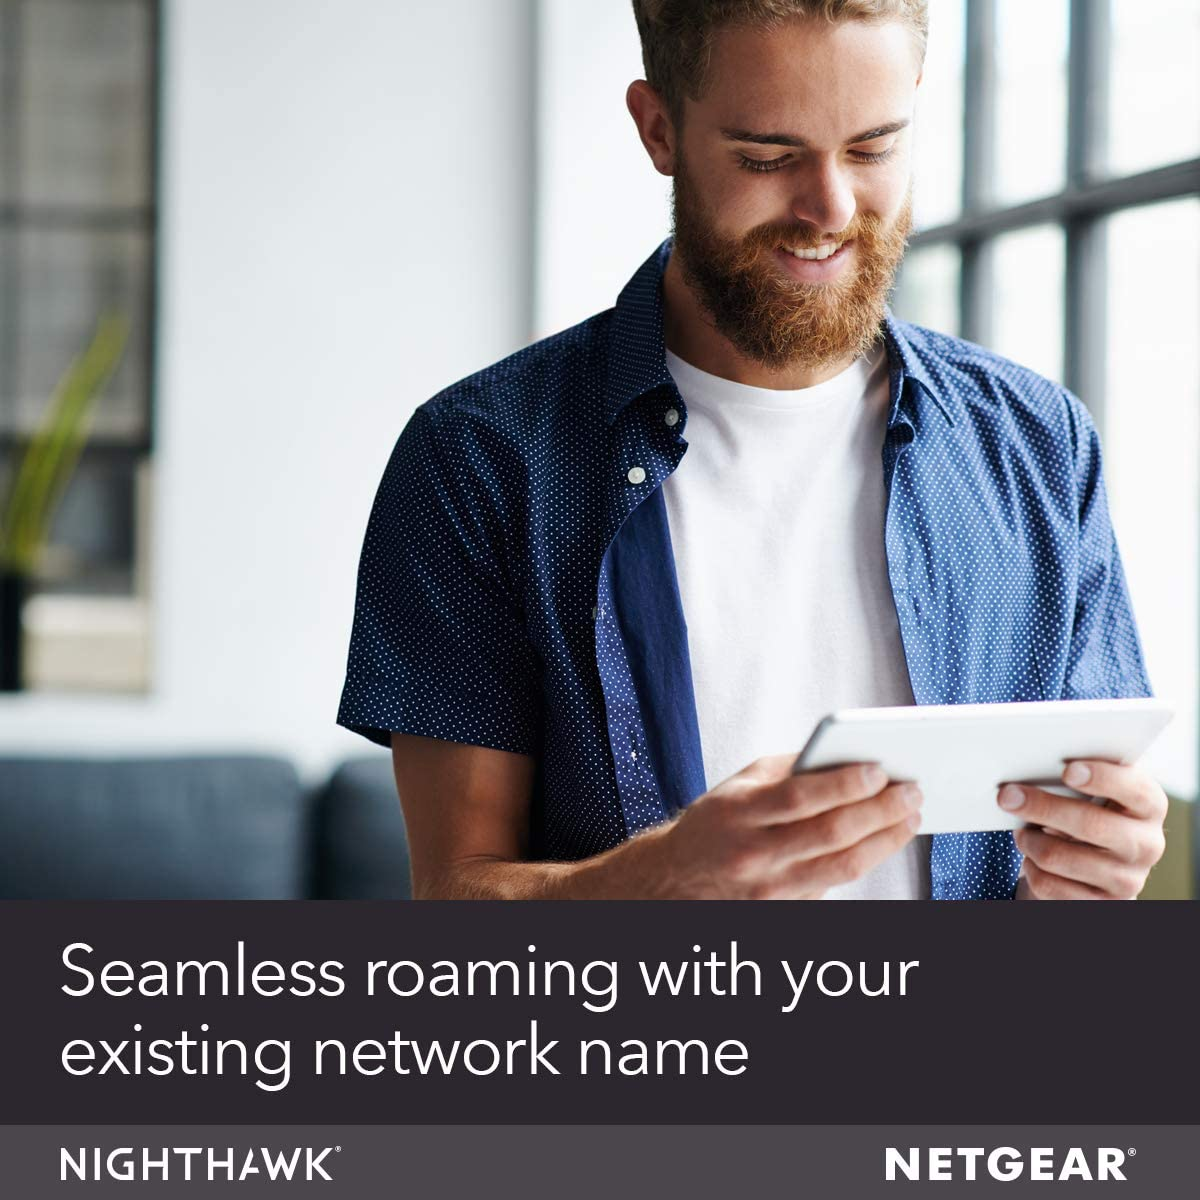 NETGEAR WiFi Mesh Range Extender EX7000 - Coverage up to 2100 sq.ft. and 35 devices with AC1900 Dual Band Wireless Signal Booster & Repeater (up to 1900Mbps speed), plus Mesh Smart Roaming: Computers & Accessories